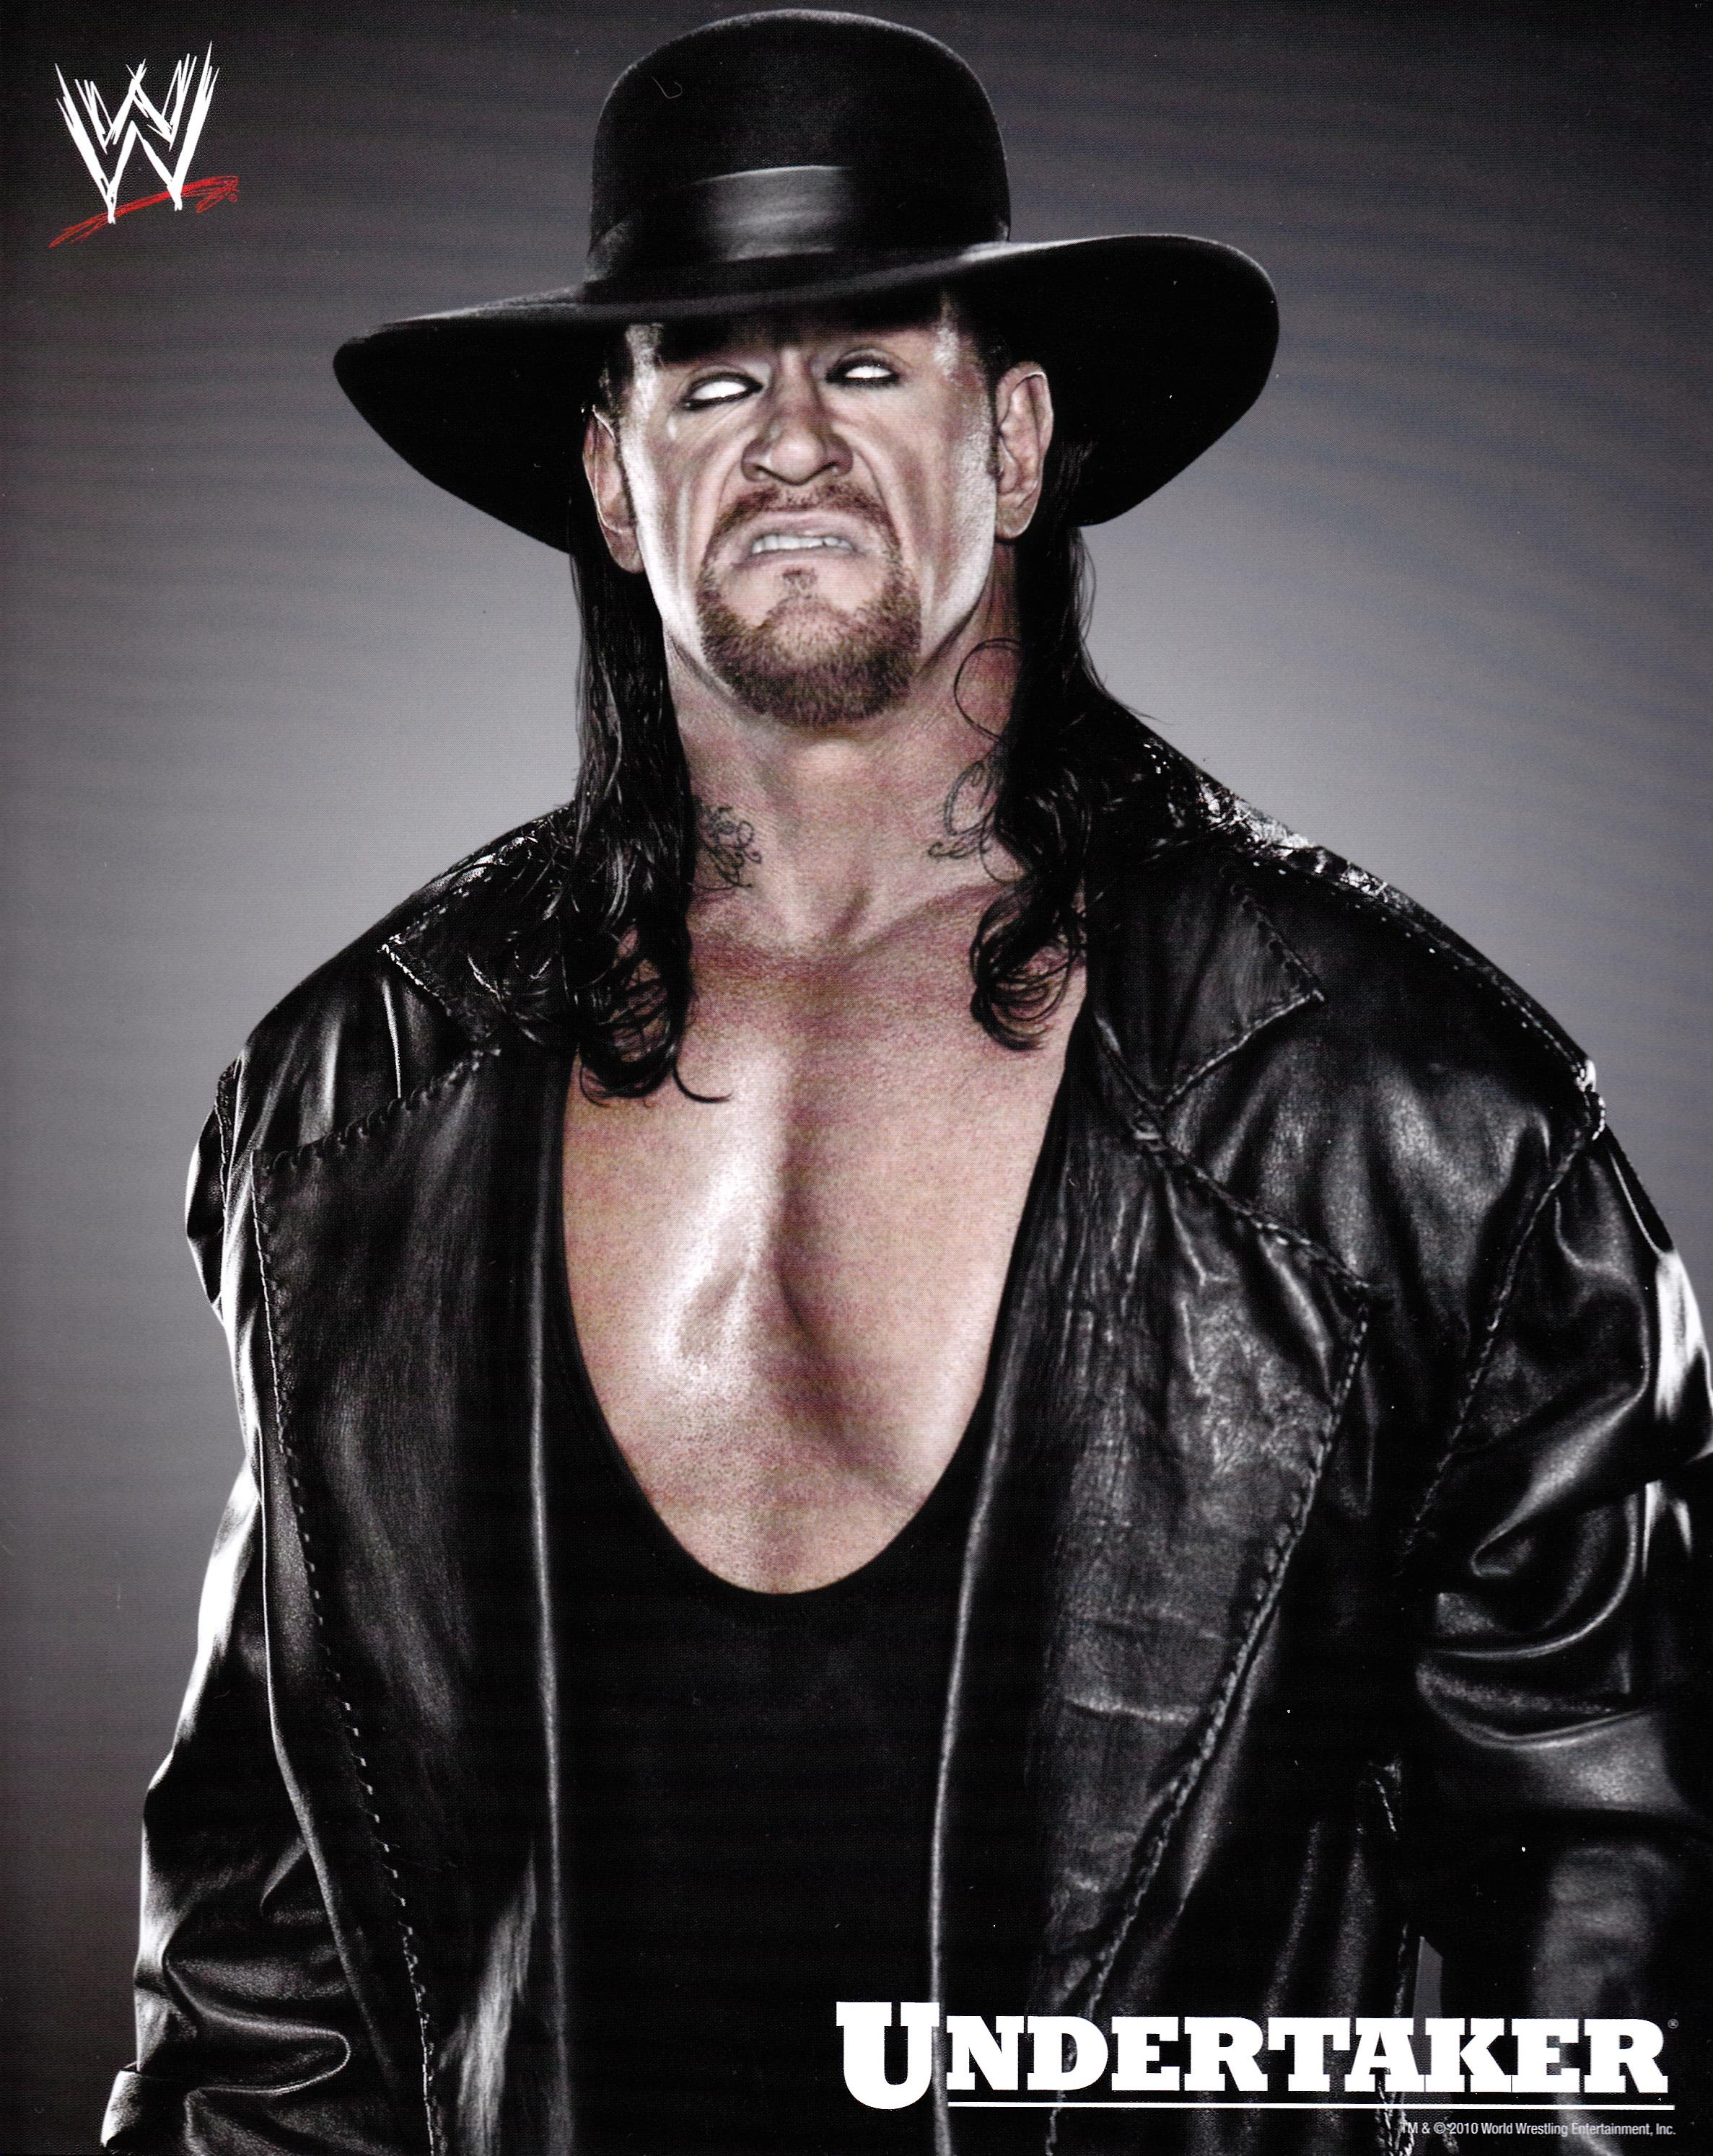 Undertaker Wwe Superstar Still Free Hd Desktop Laptop Images